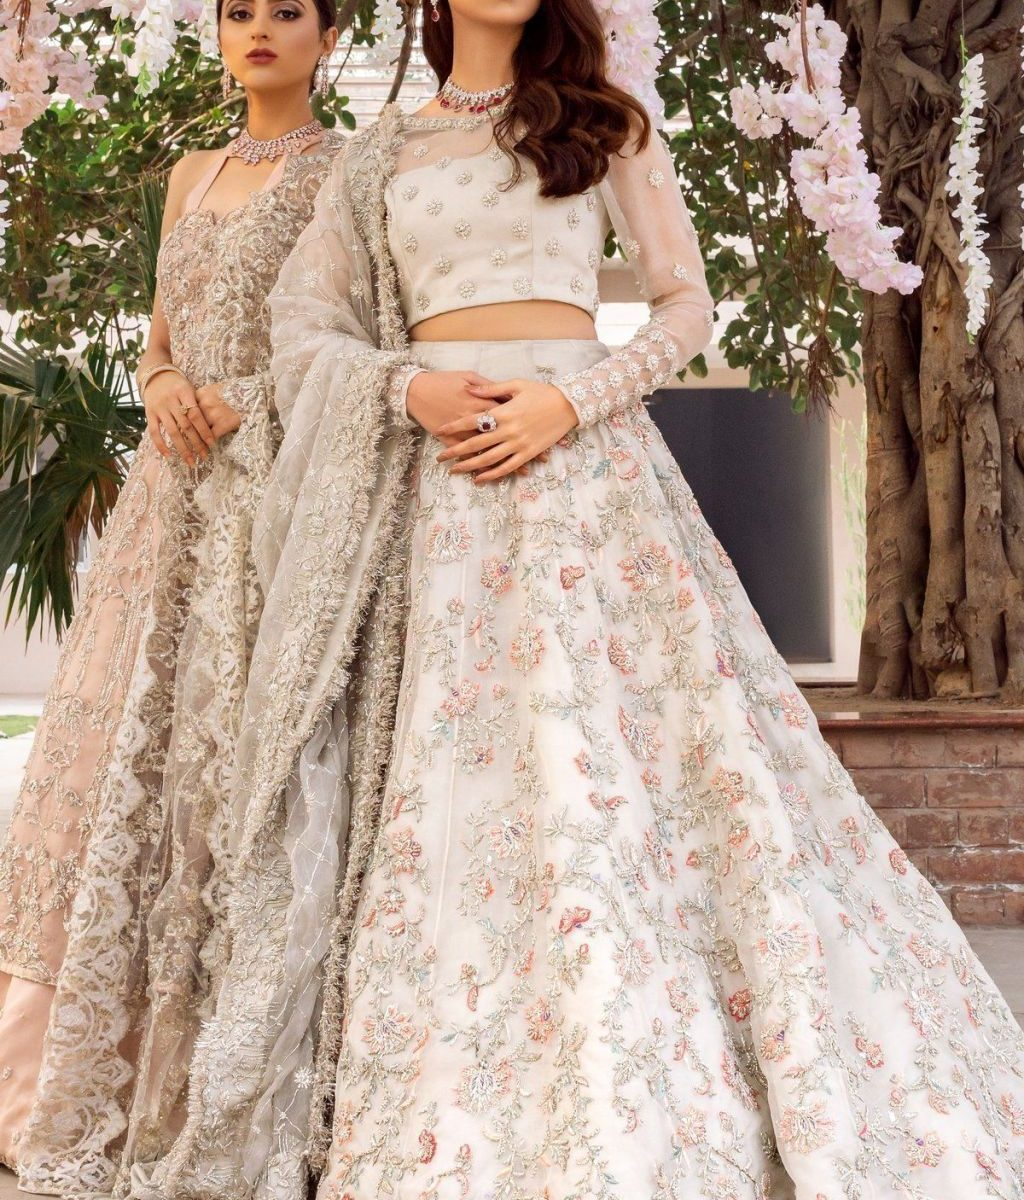 Stunning Bridel Lehenga Natural Colourfull Scheme 2020